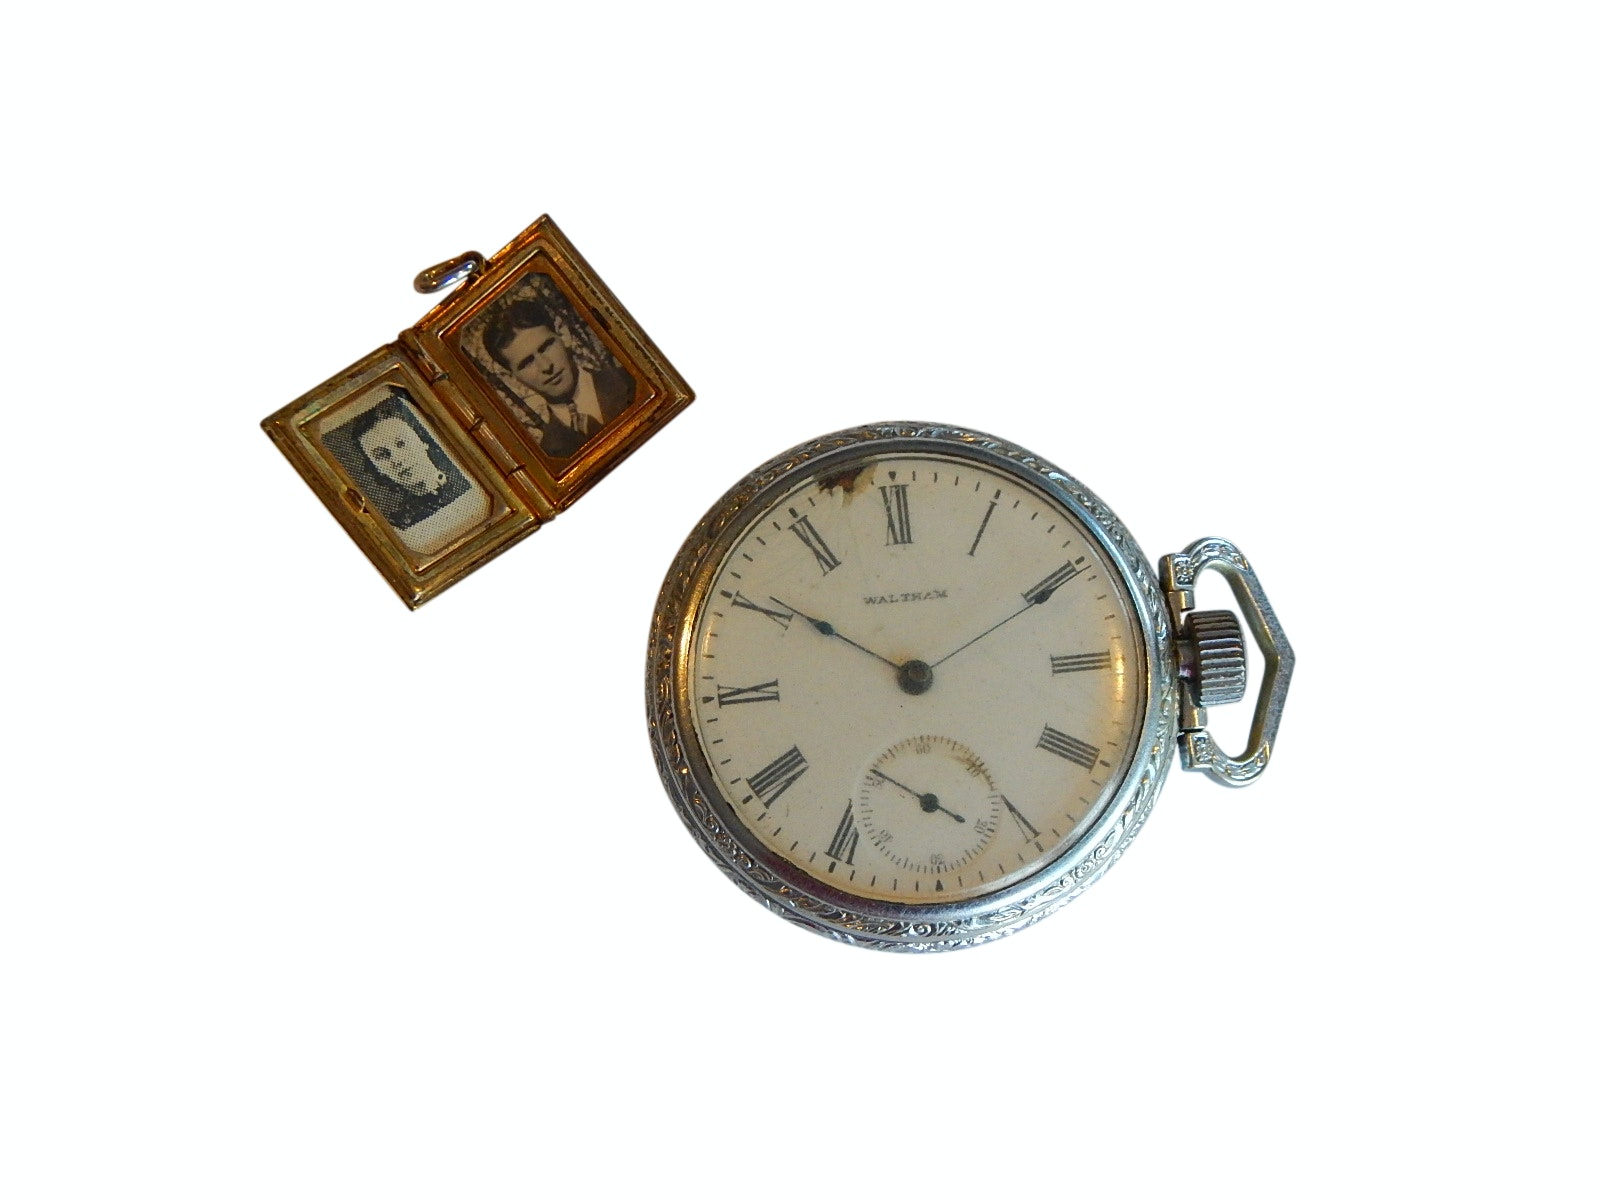 Vintage Waltham Silver-Tone Pocket Watch and Small Locket Pendant